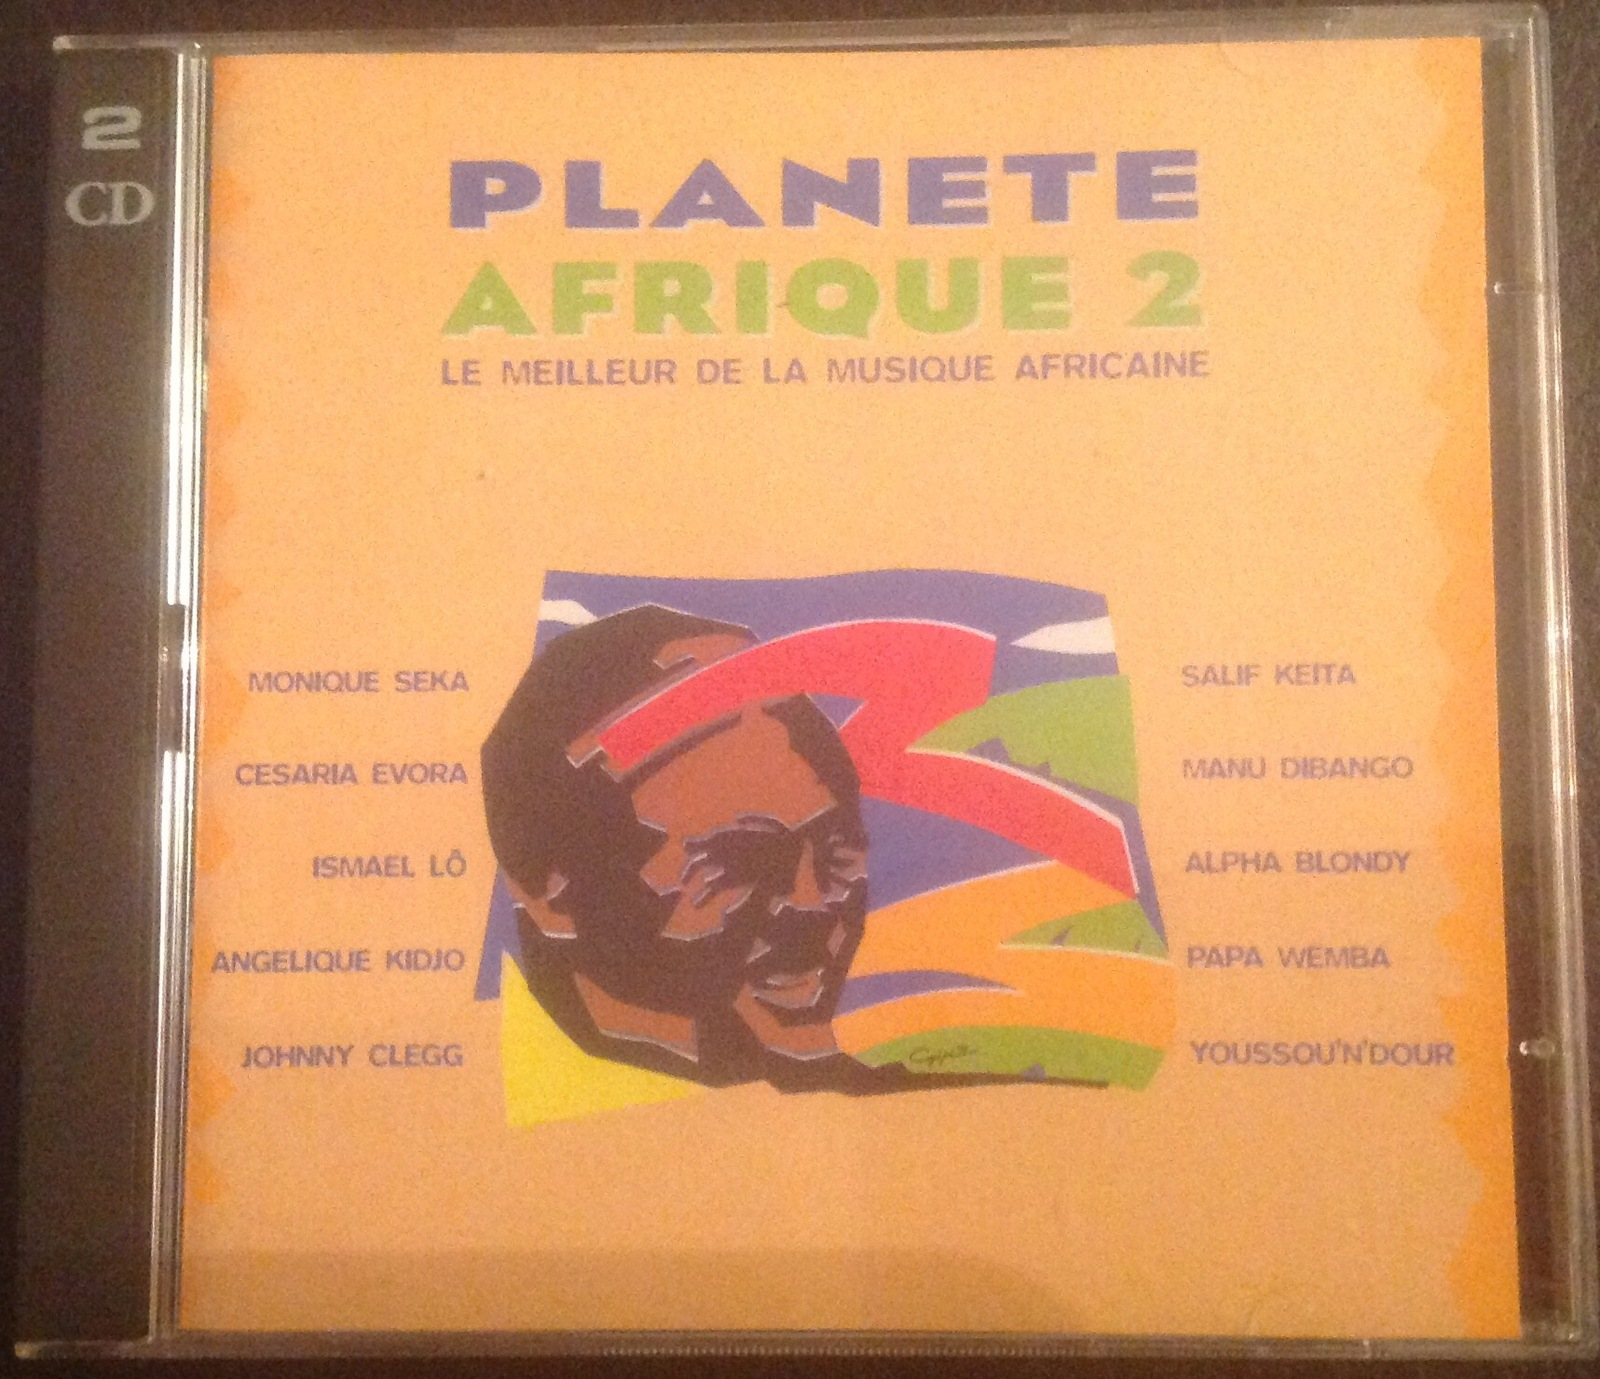 Primary image for Planete Afrique 2 Best Of African Music 2 Cd Set 1996